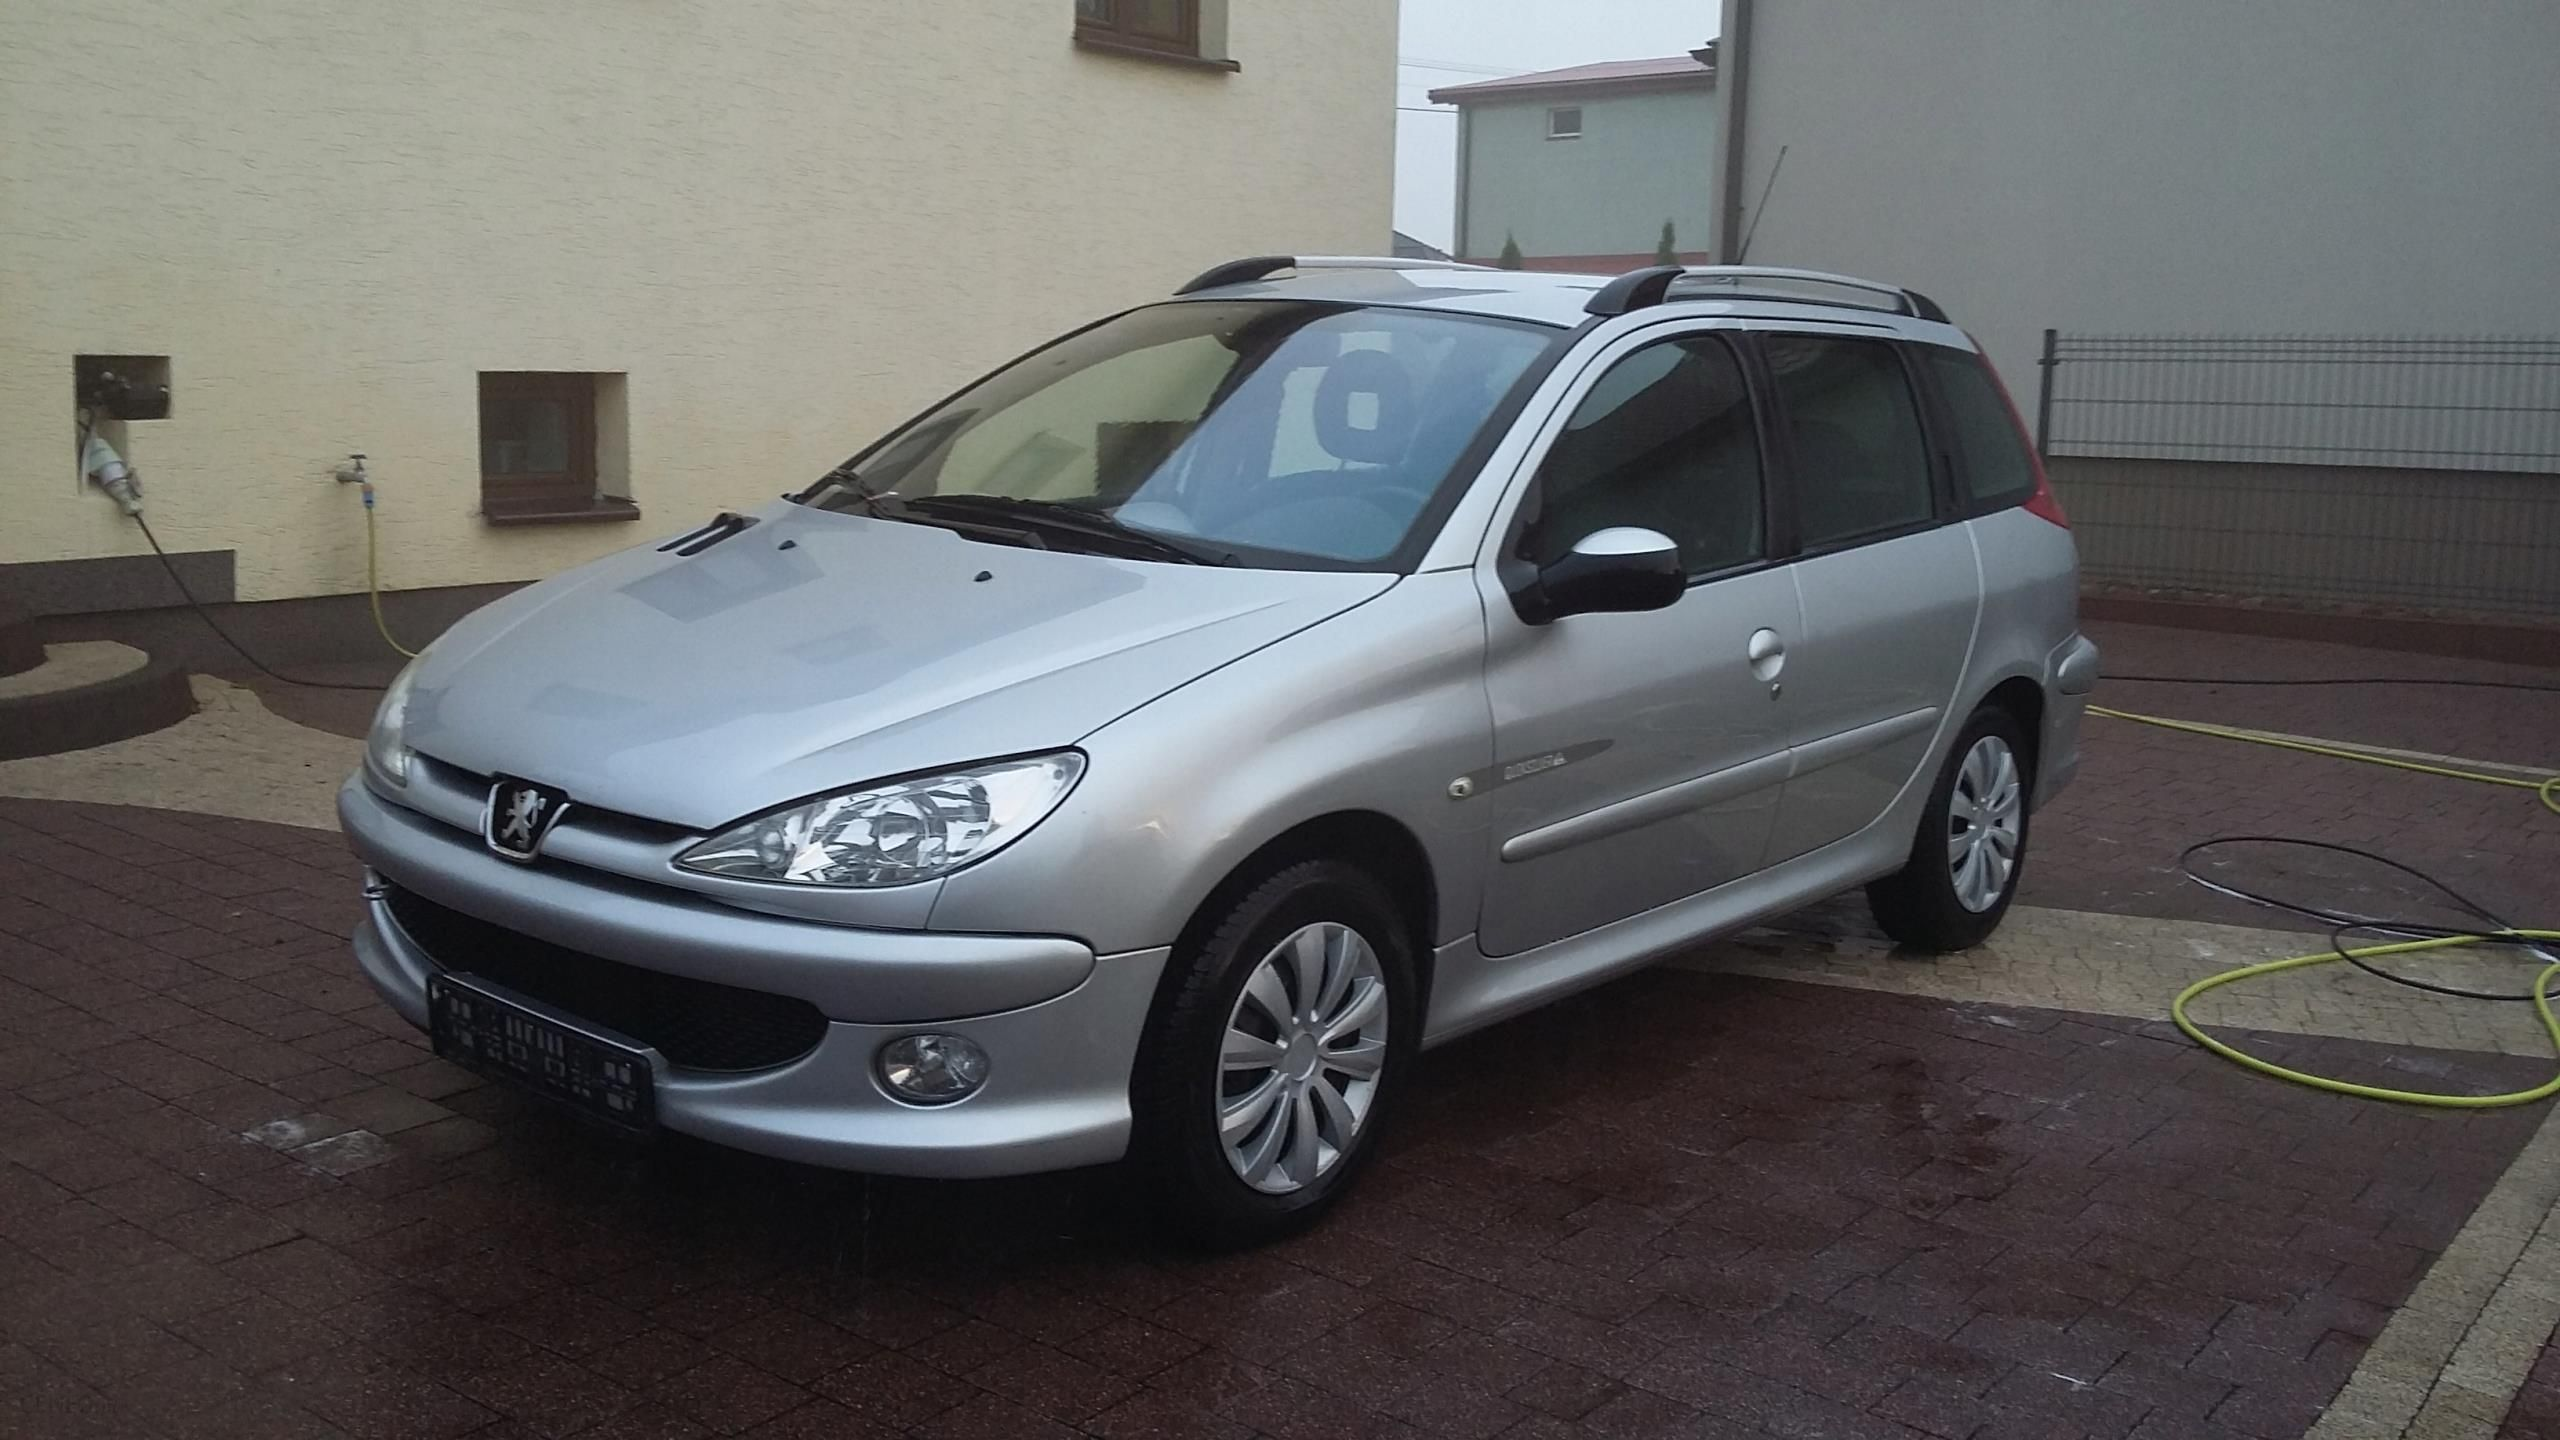 Peugeot 206 Sw 2 0 Hdi Opinie I Ceny Na Ceneo Pl